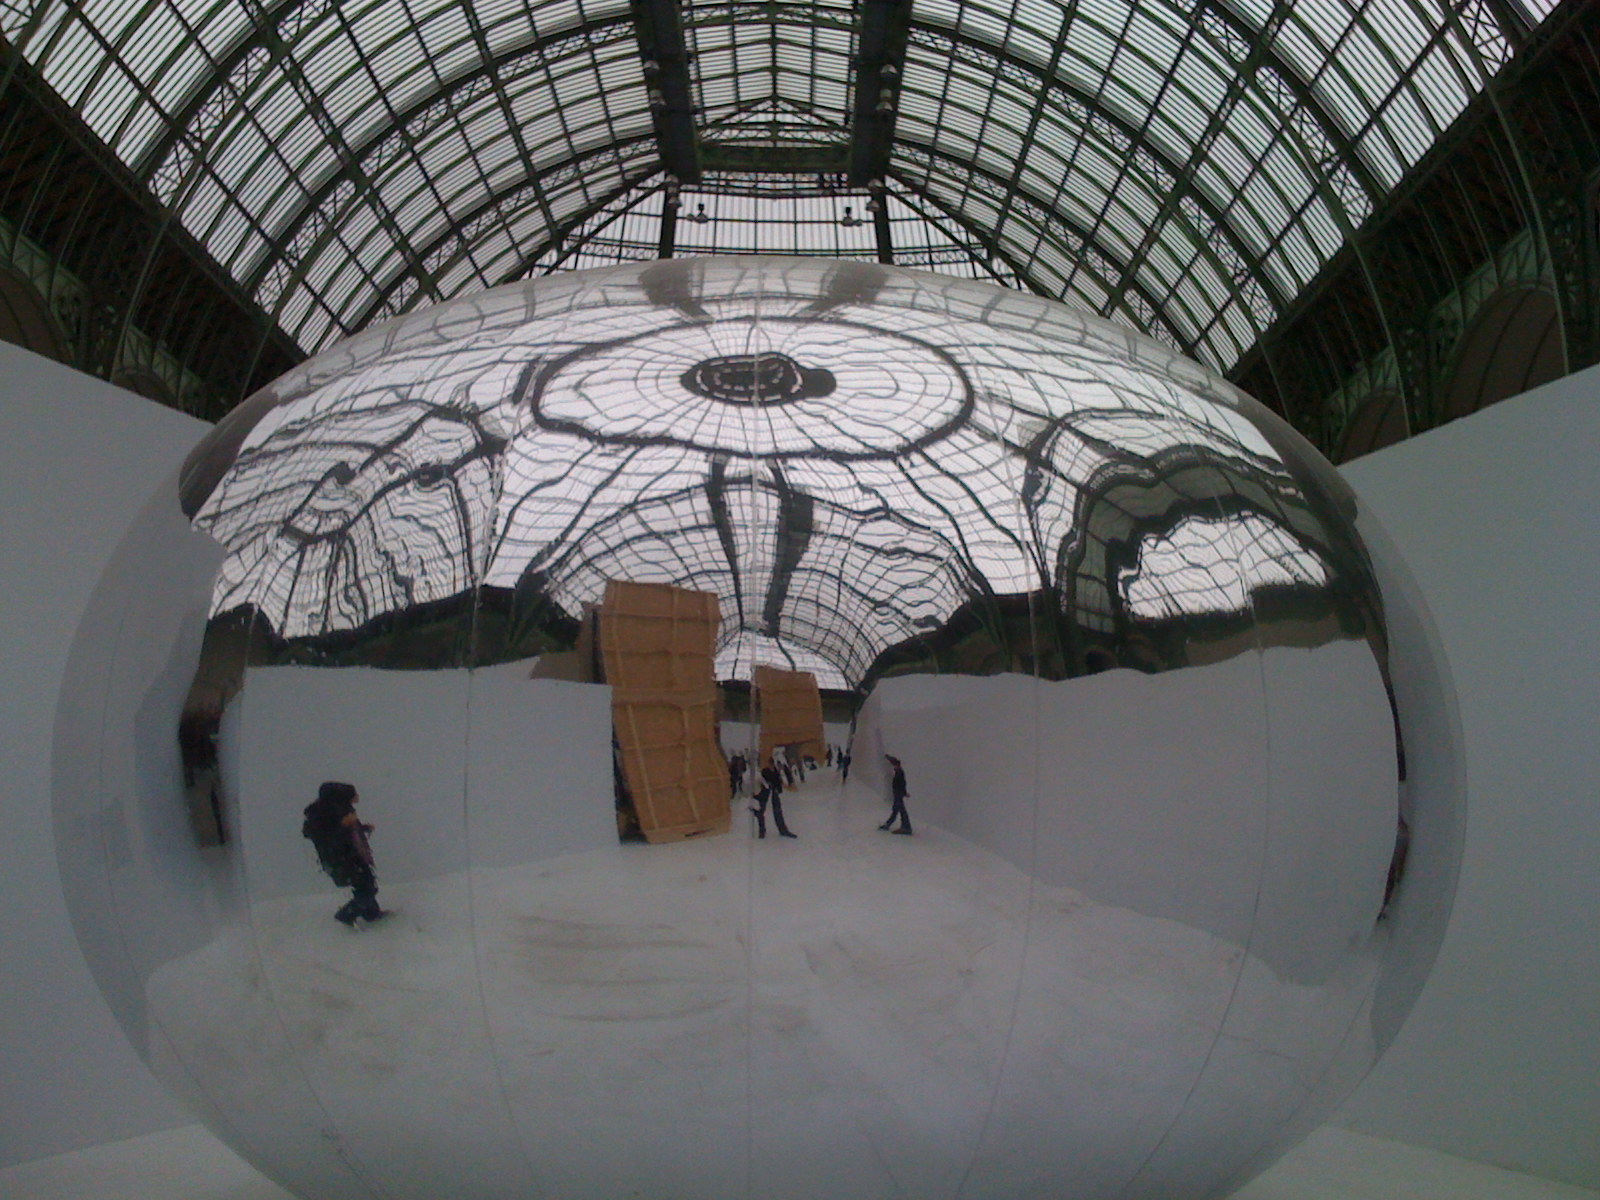 Silence is Sexy, Bruno Peinado, Grand Palais, 2009